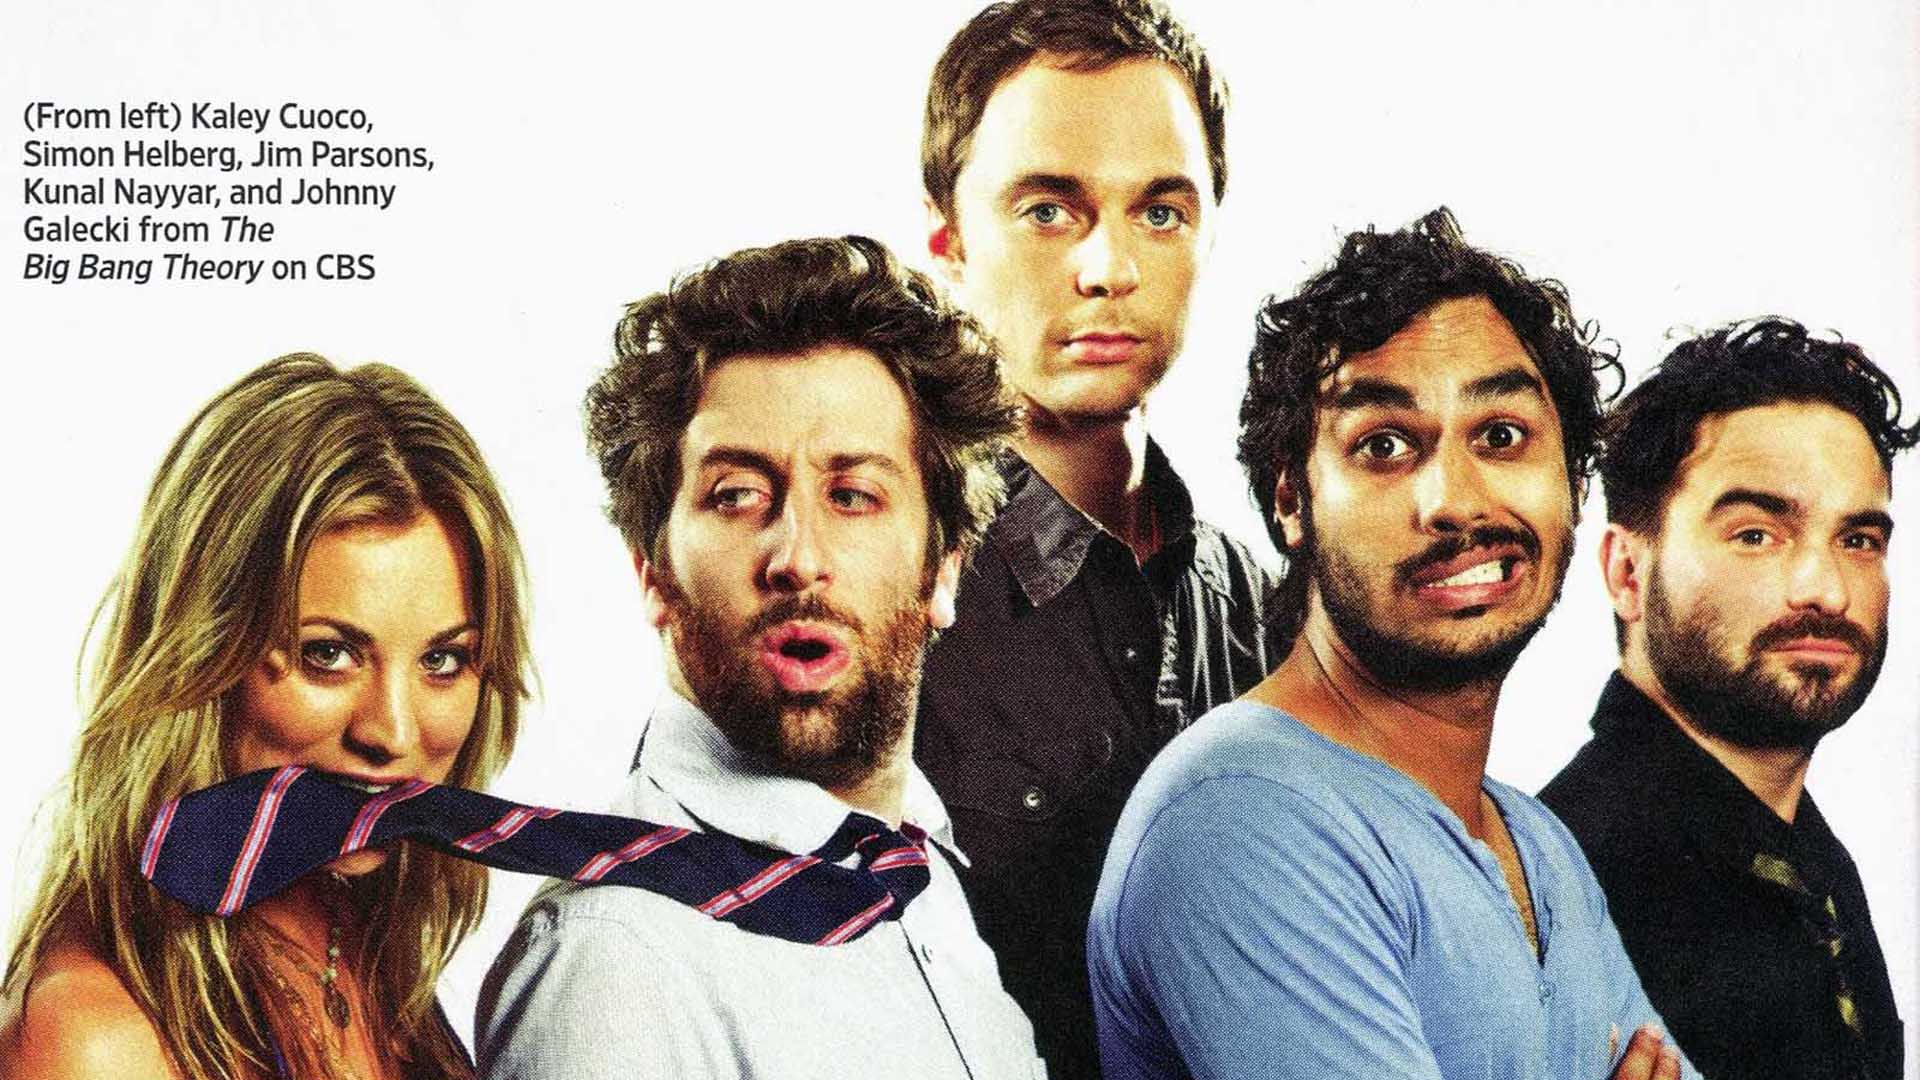 big bang theory wallpaper hd - wallpaper.wiki